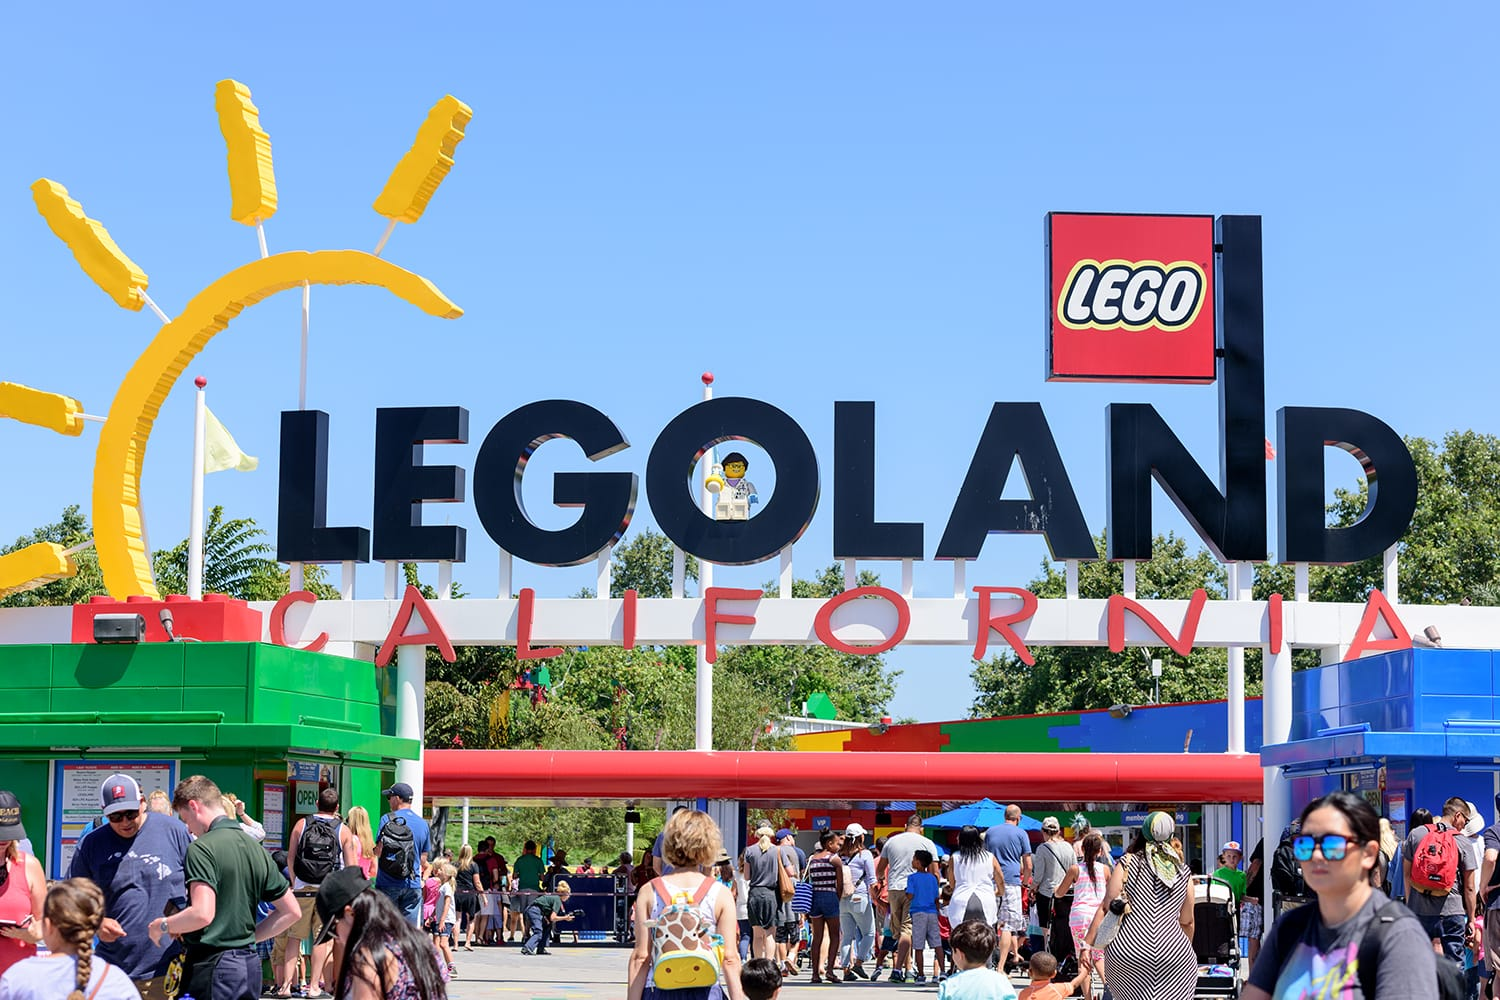 People from all over he world visiting Legoland theme park located in Carlsbad, California, USA